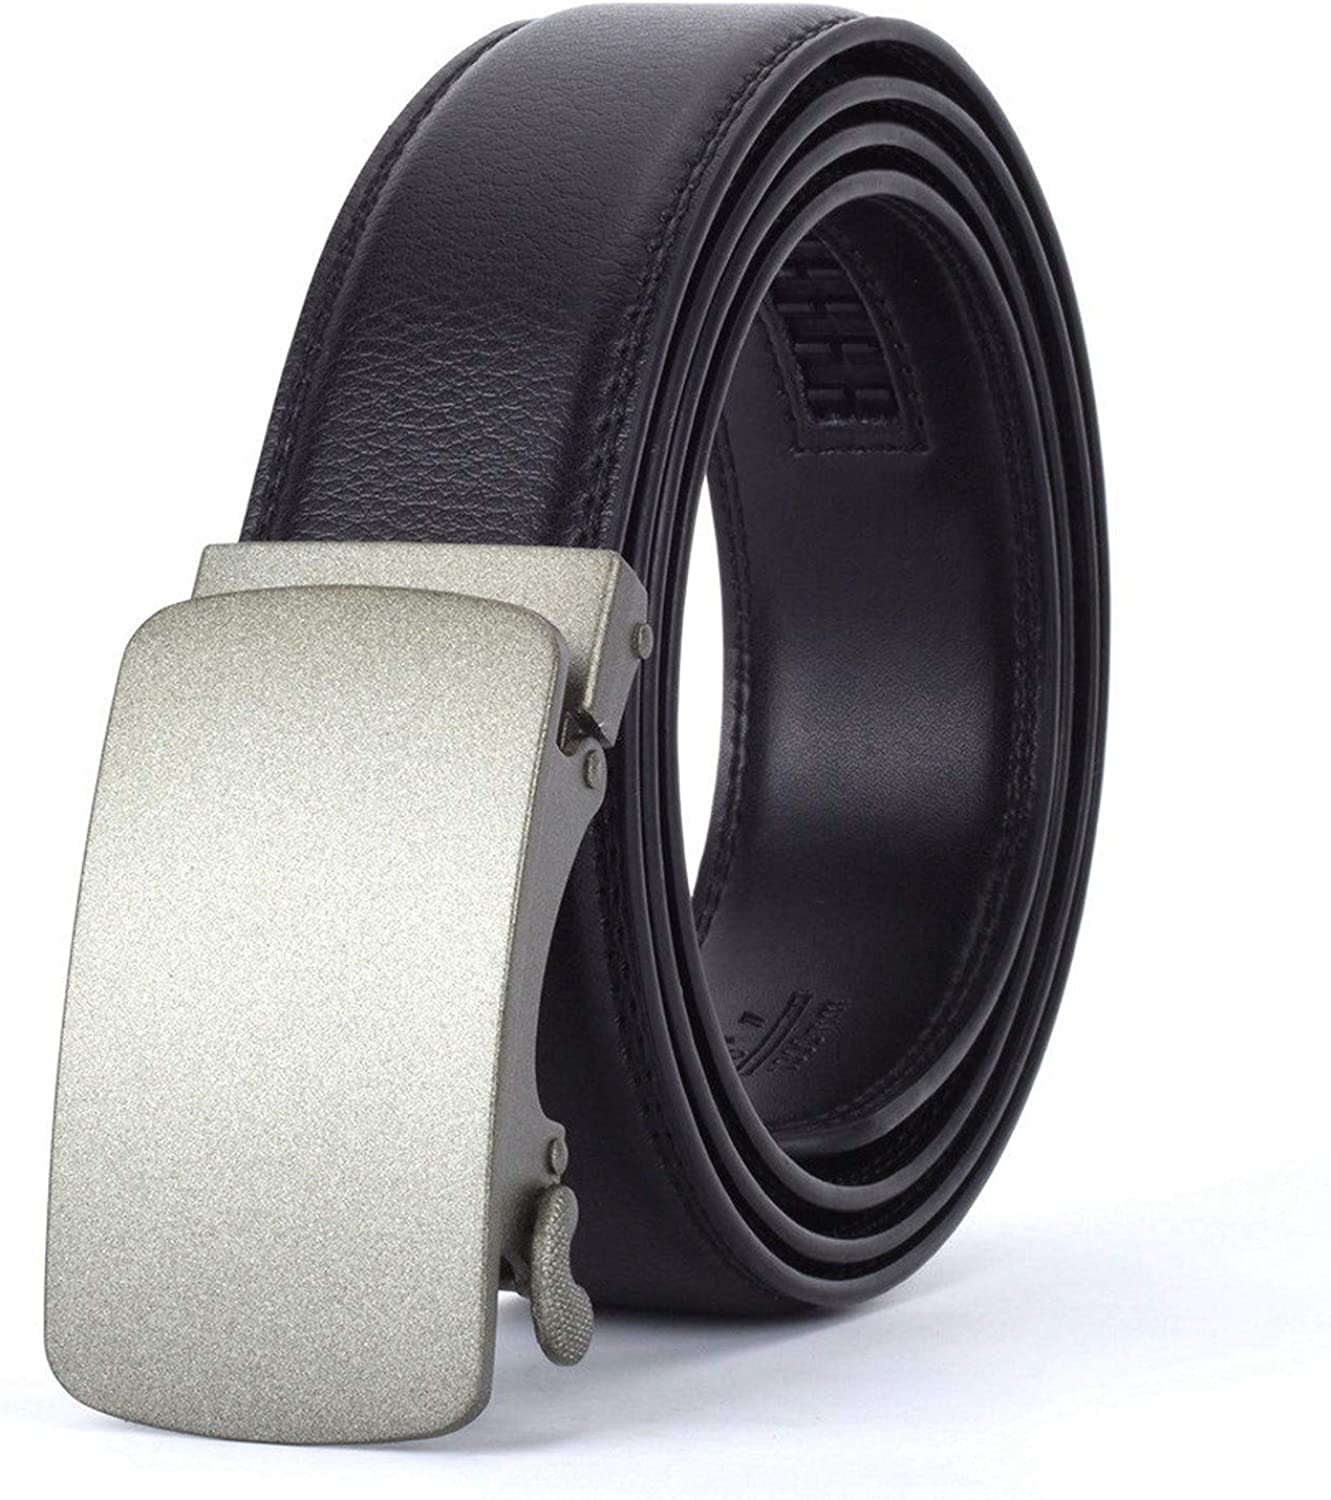 Men Automatic Buckle Leather luxury Belt Business Male Alloy buckle Belts for Men Ceinture Homme,O,115cm